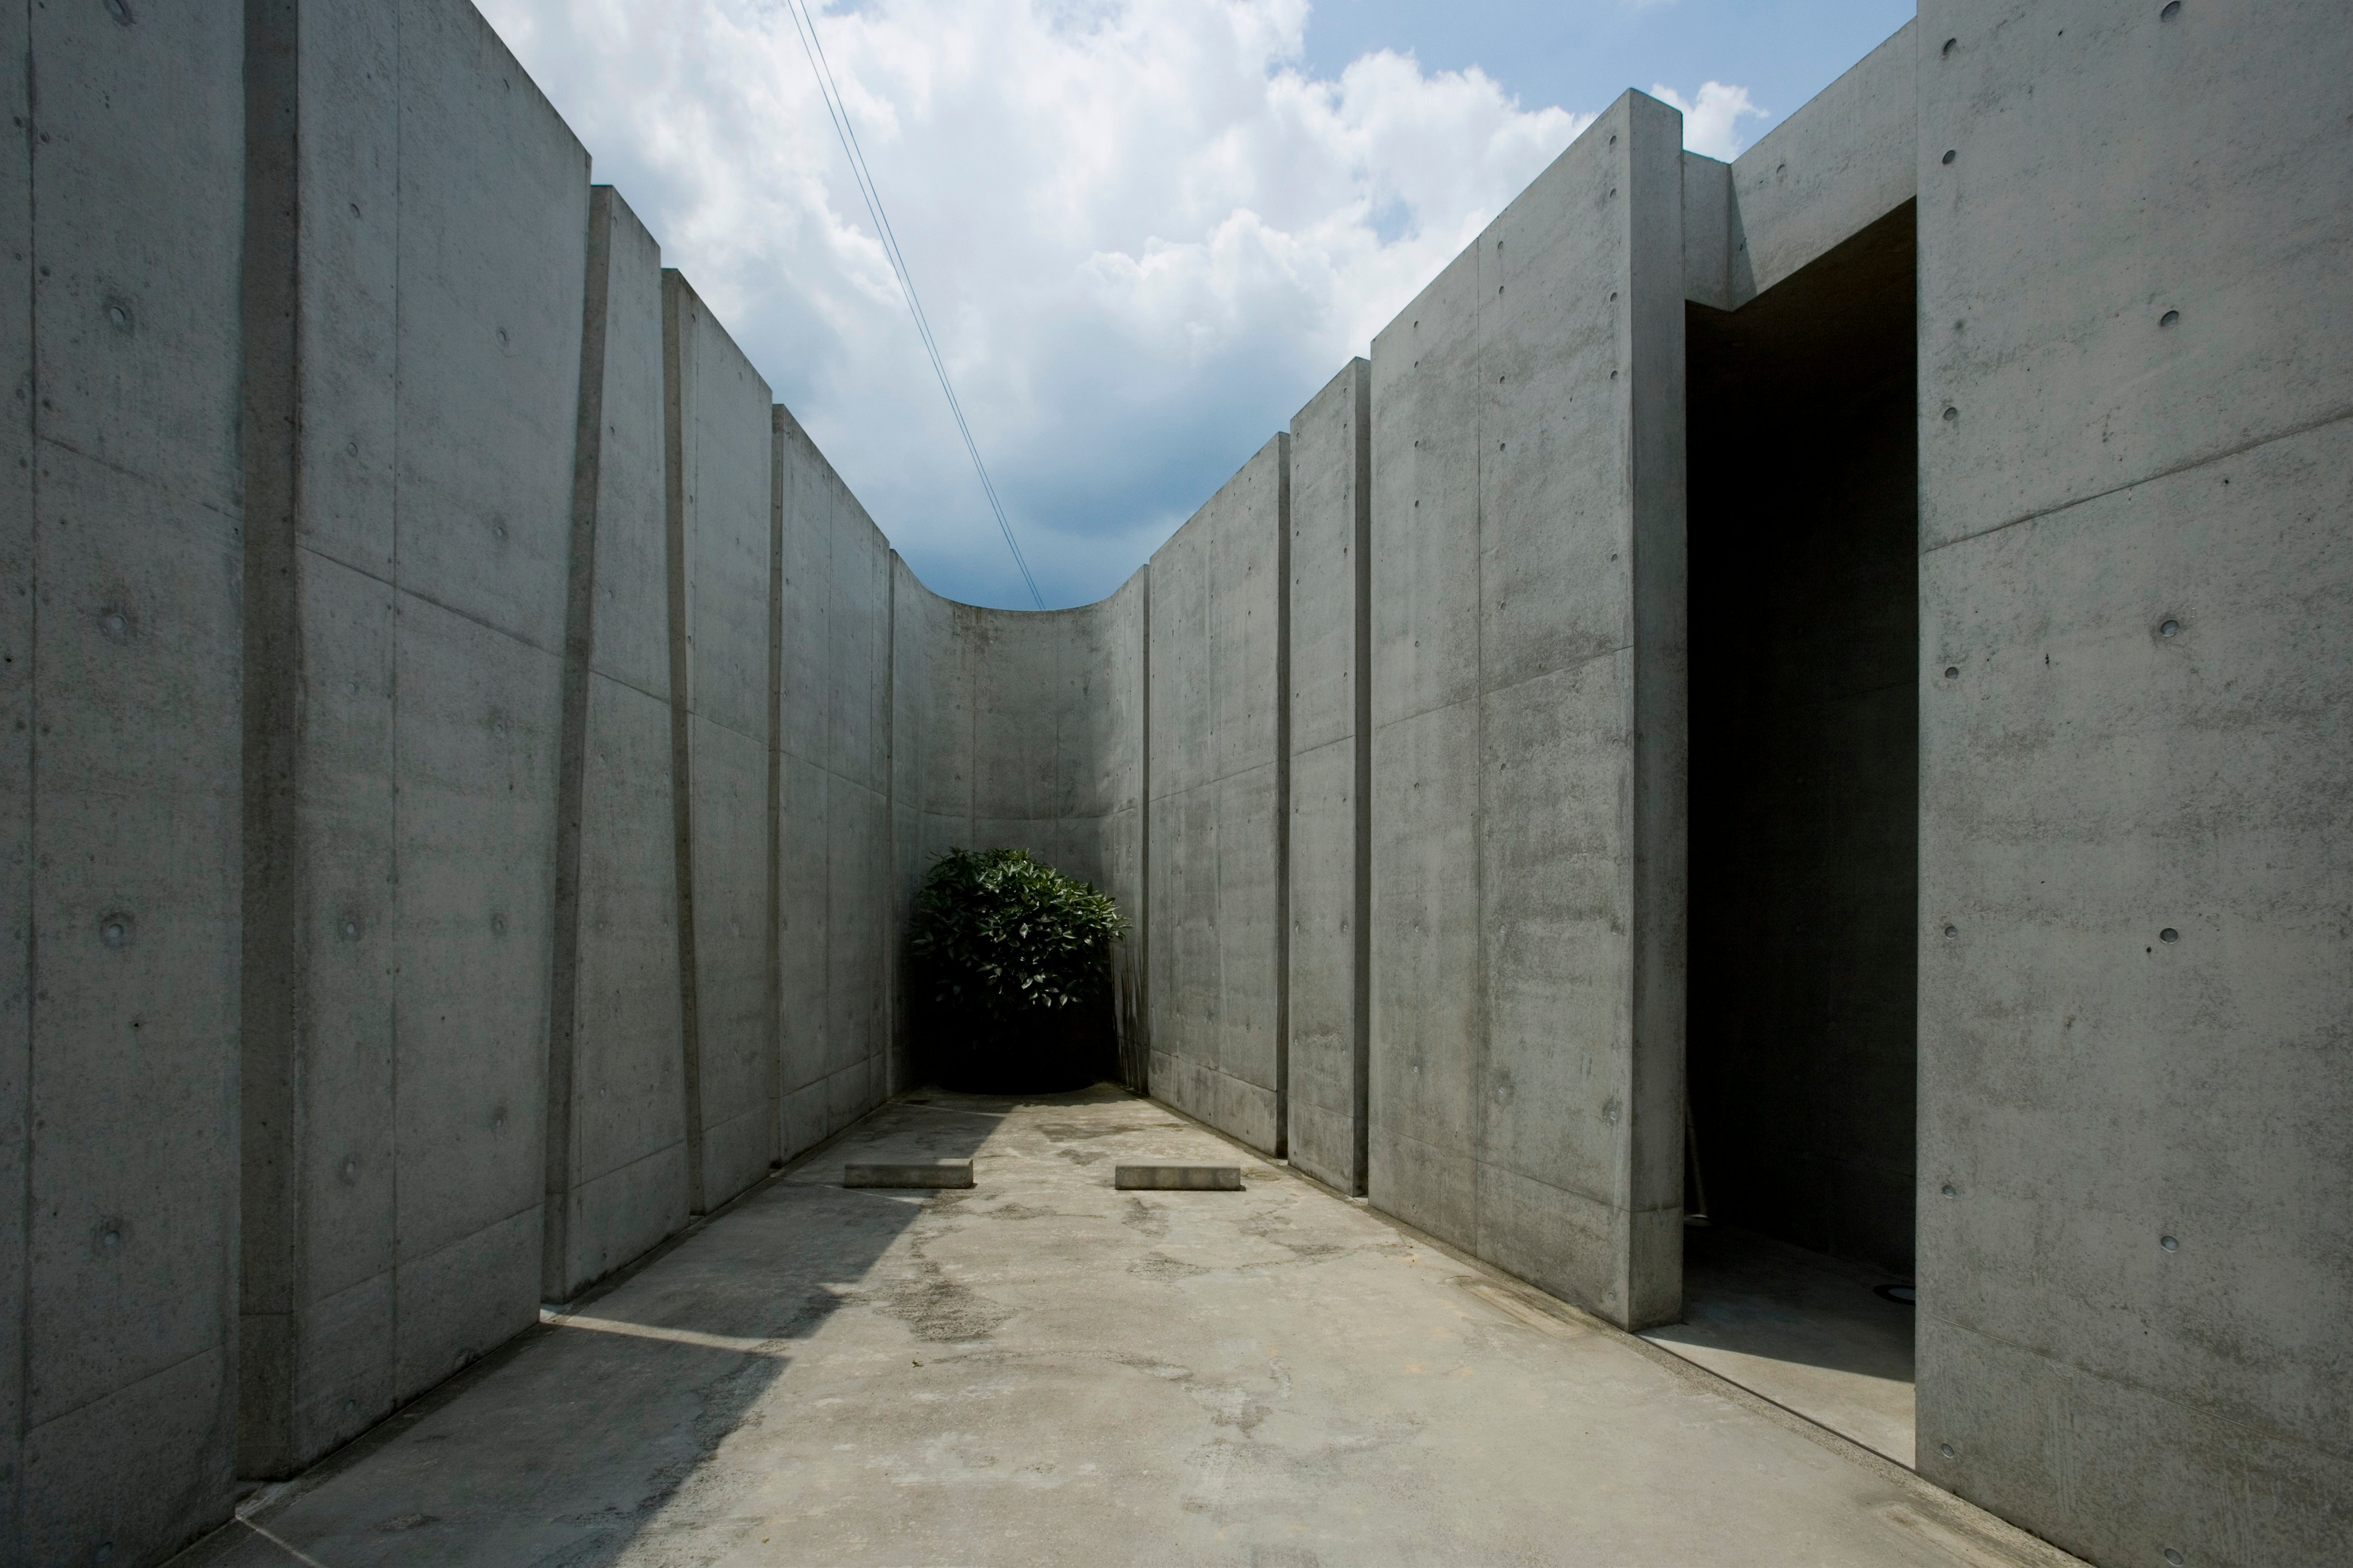 Exterior wall bends sharply at the corners, with greenery placed strategically throughout the outside space.